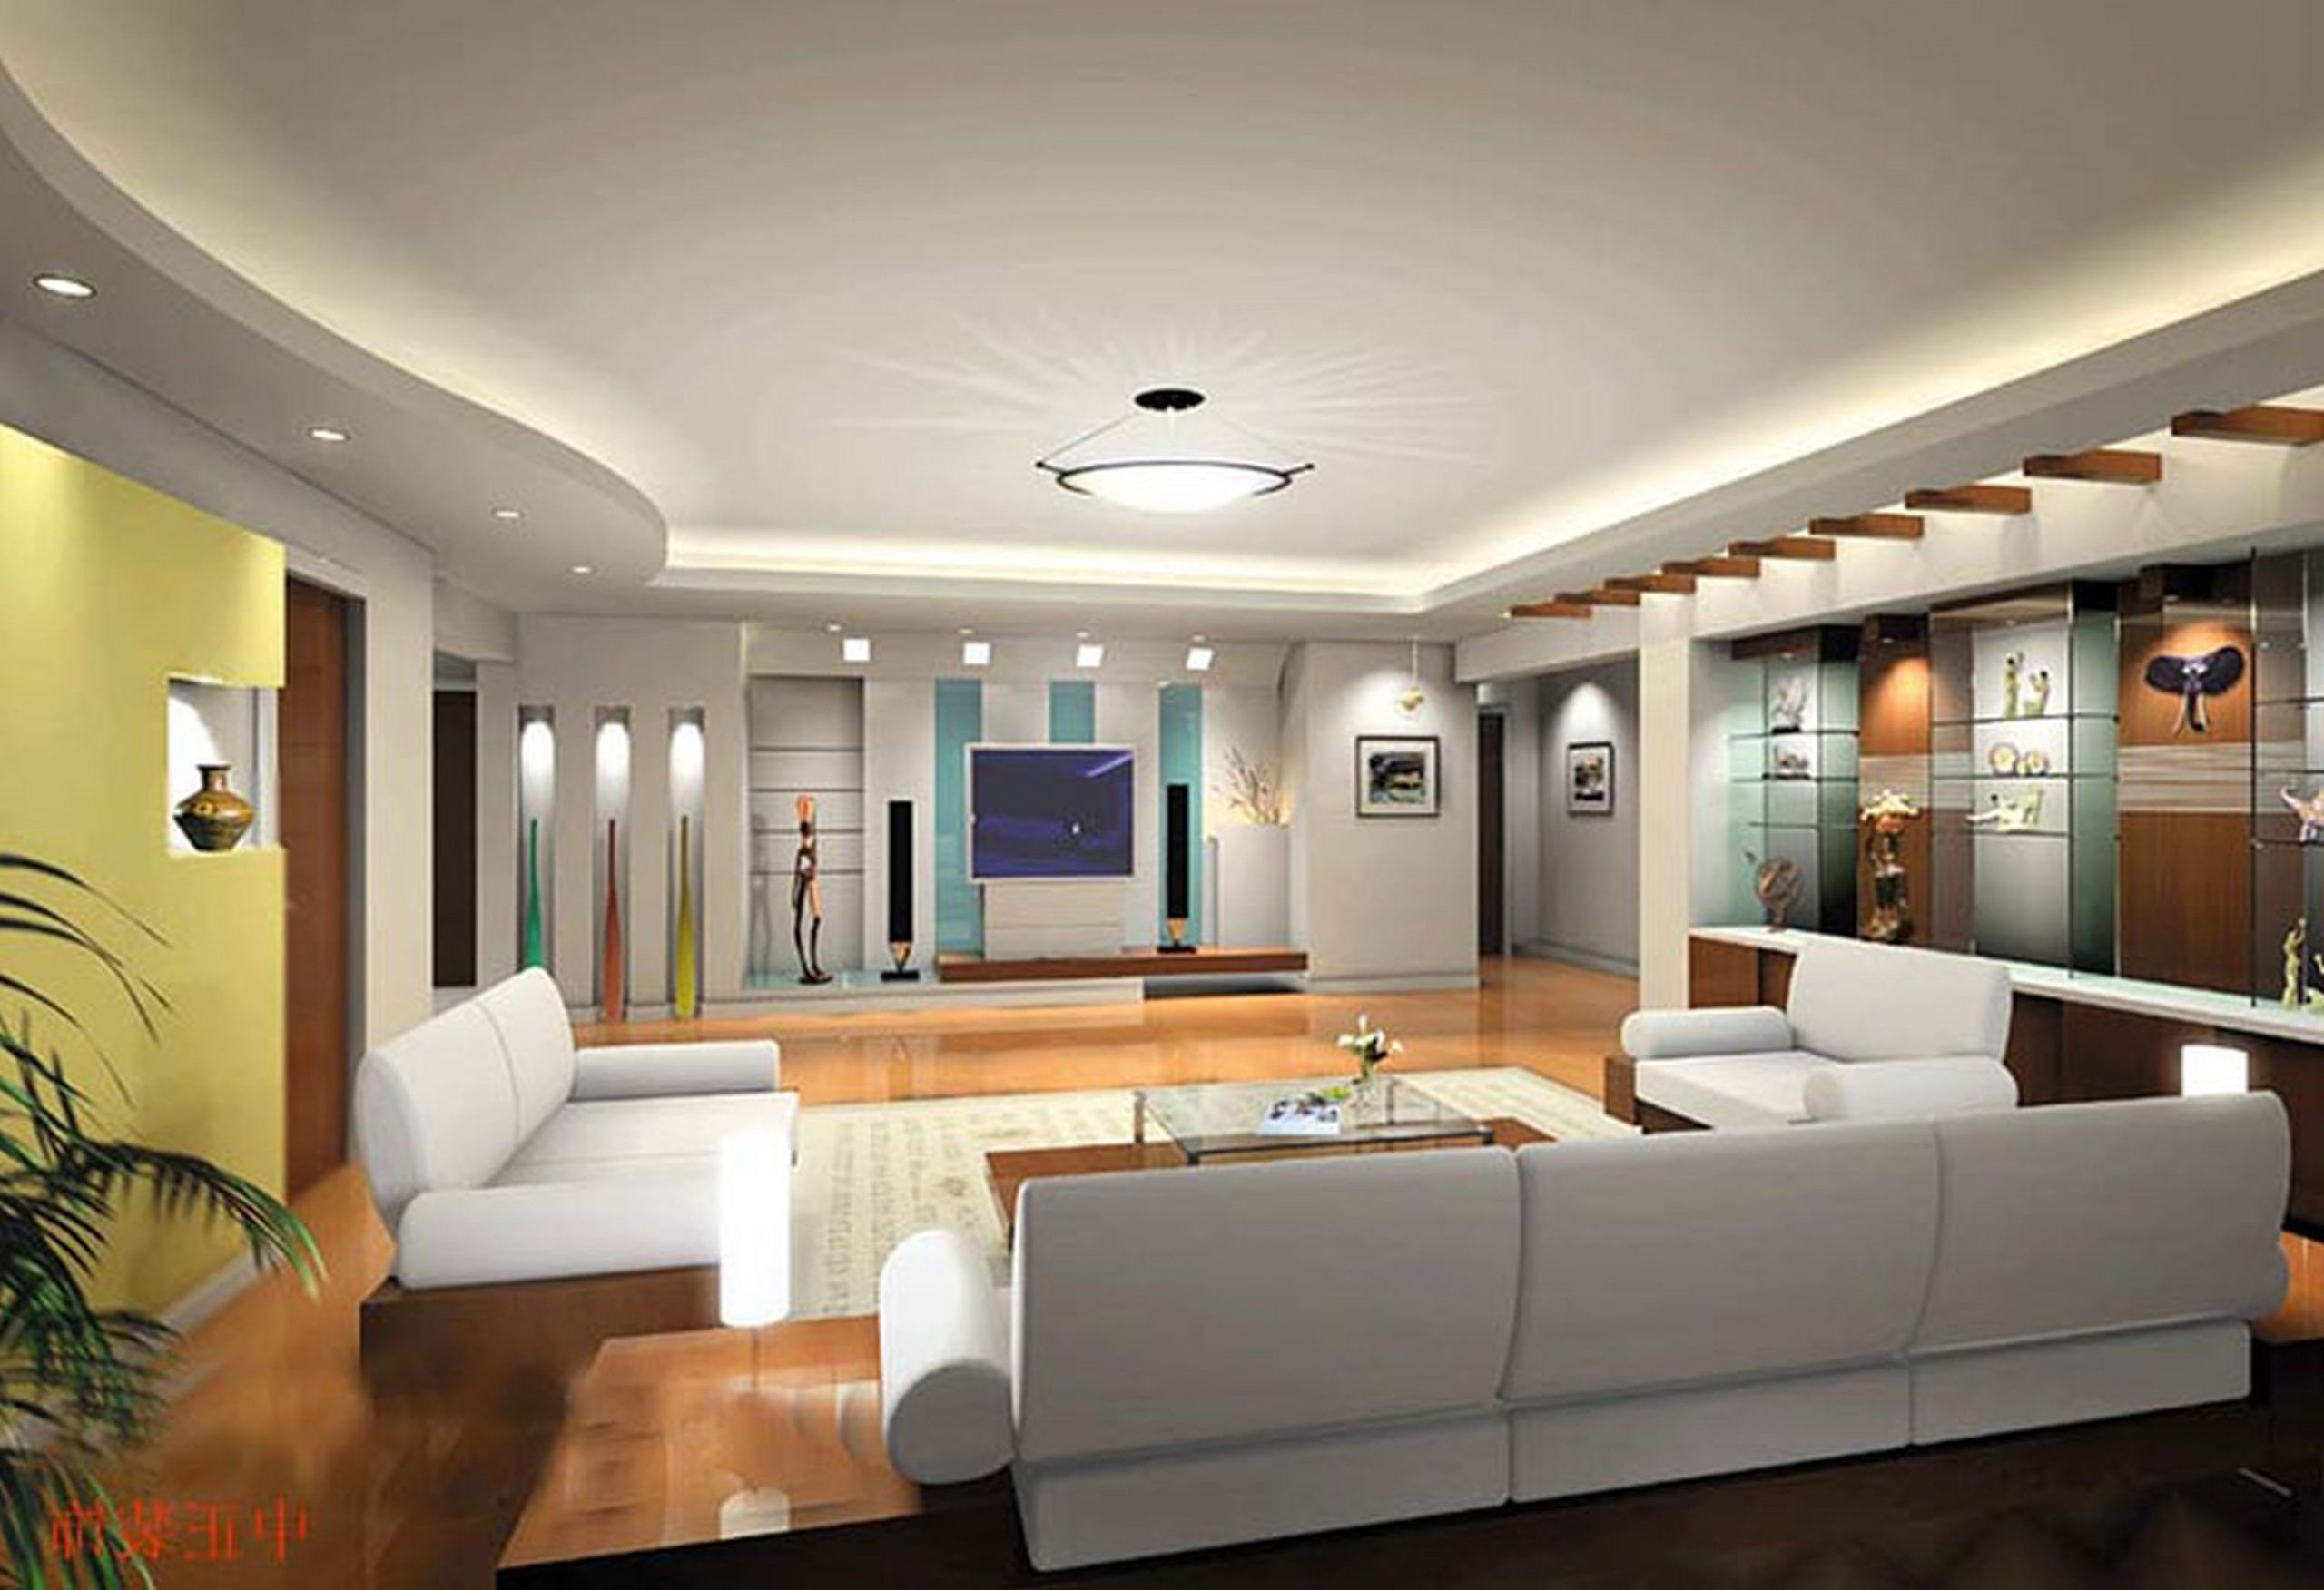 Ceiling Decorations For Living Room Low Ceiling Living Room Design Idea Living Room Lighting Ideas Low Ceiling Living Room Lighting Modern Living Room Lighting